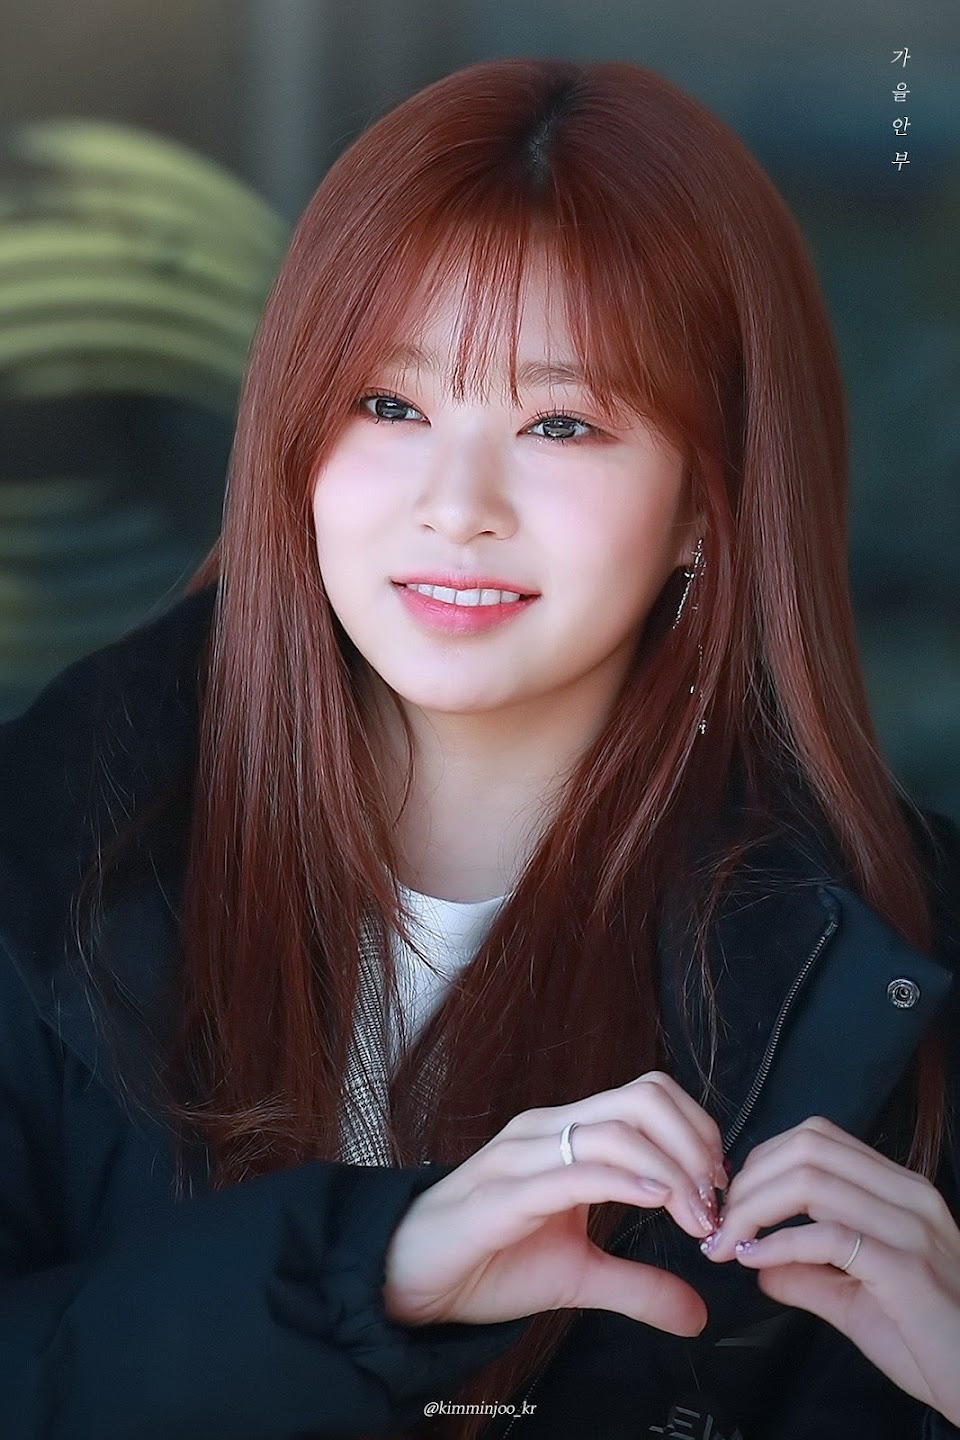 izone prettiest member 2